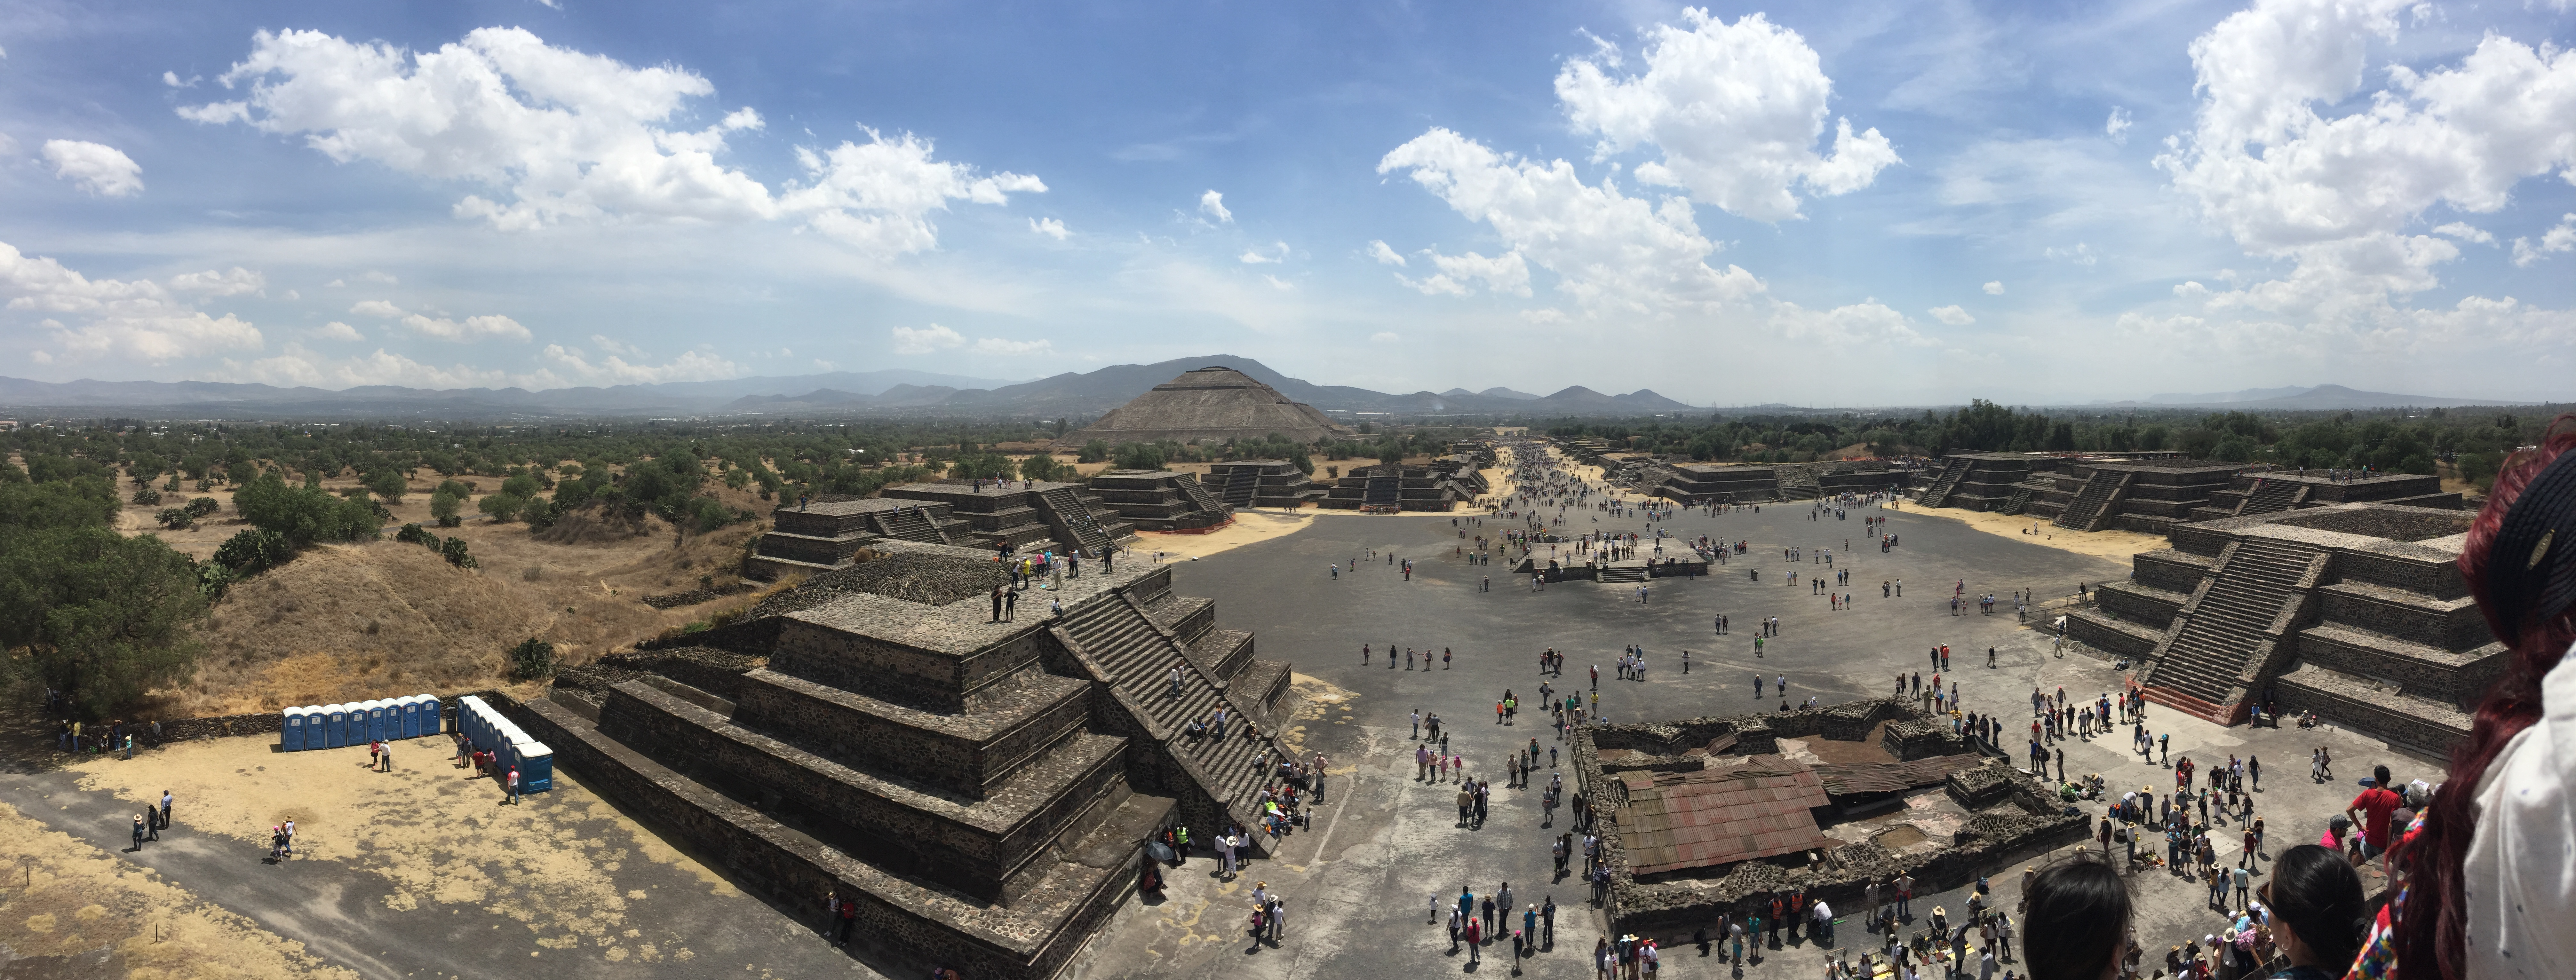 Tourist roam about the pyramids at Teotihuacan.